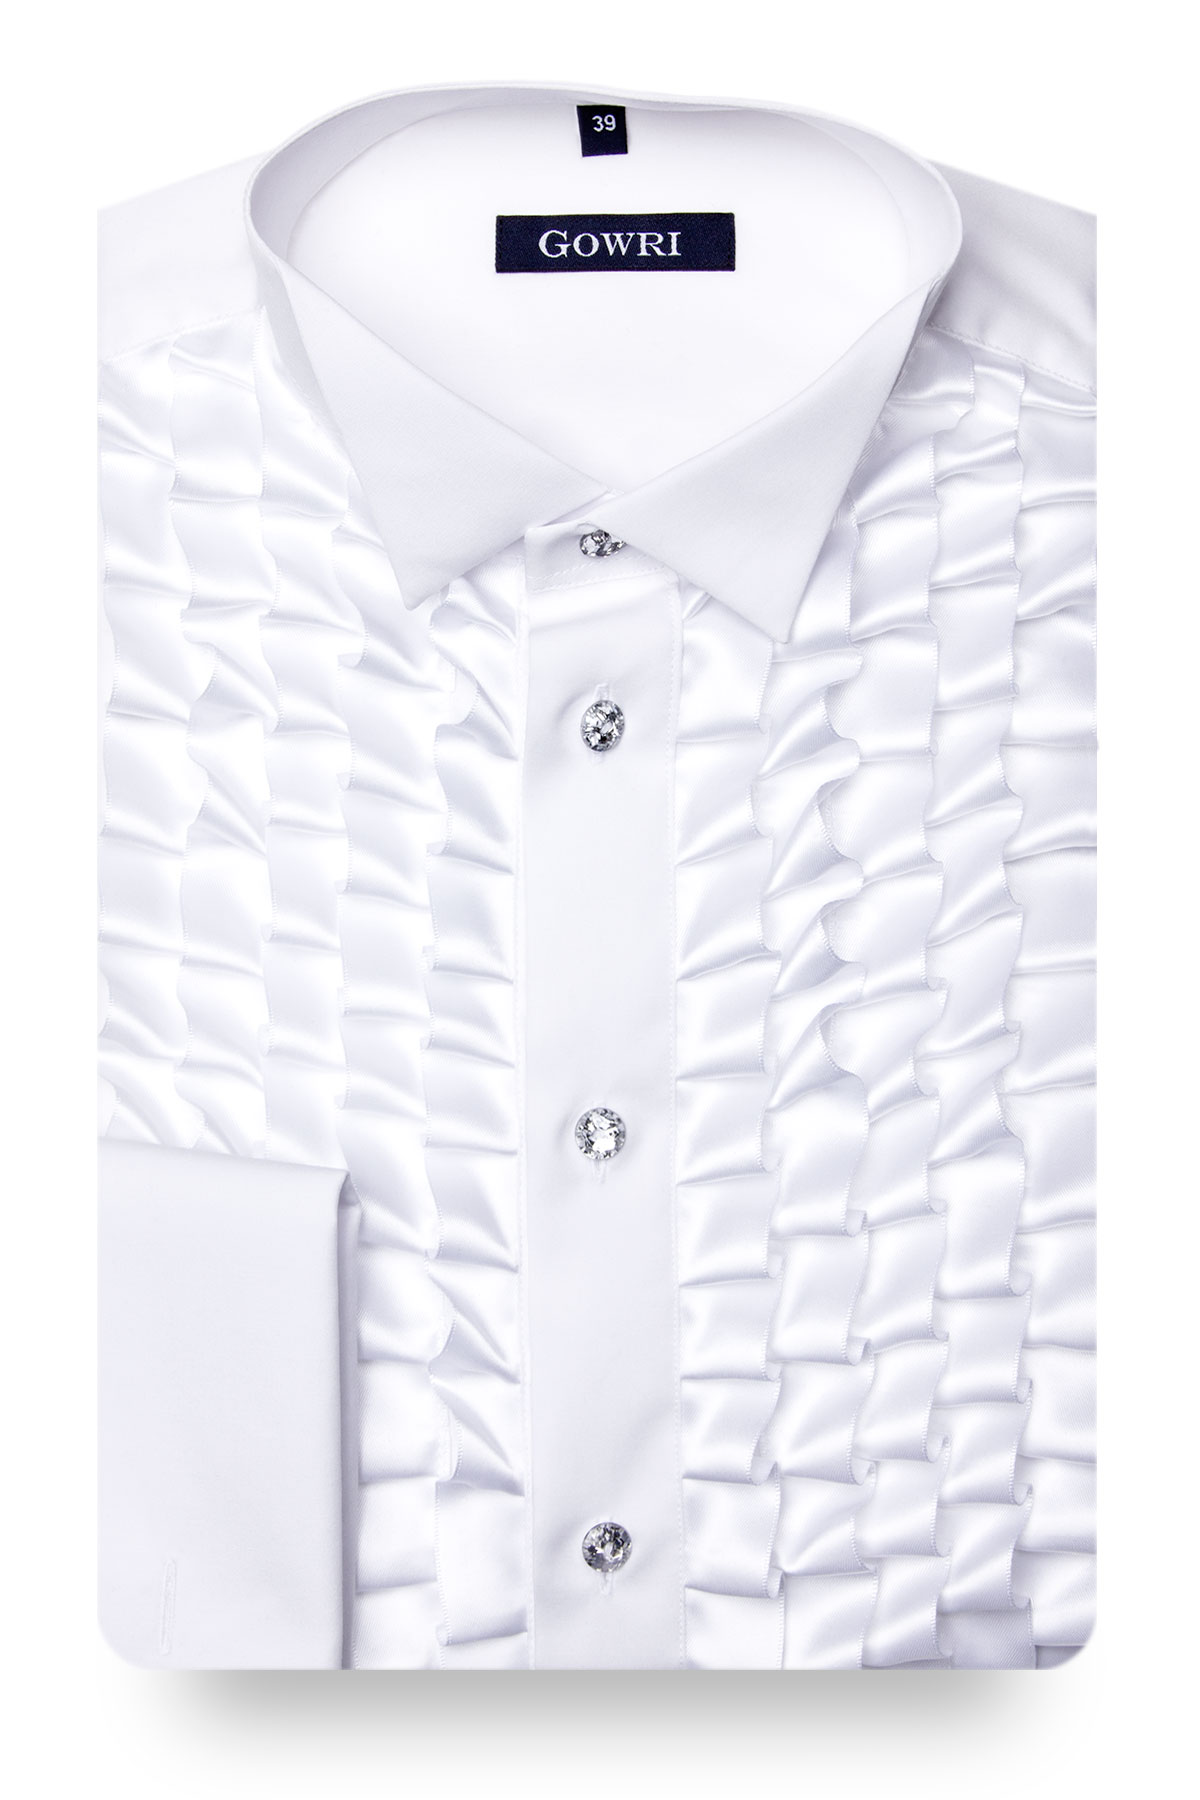 Brandenburg White Shirt